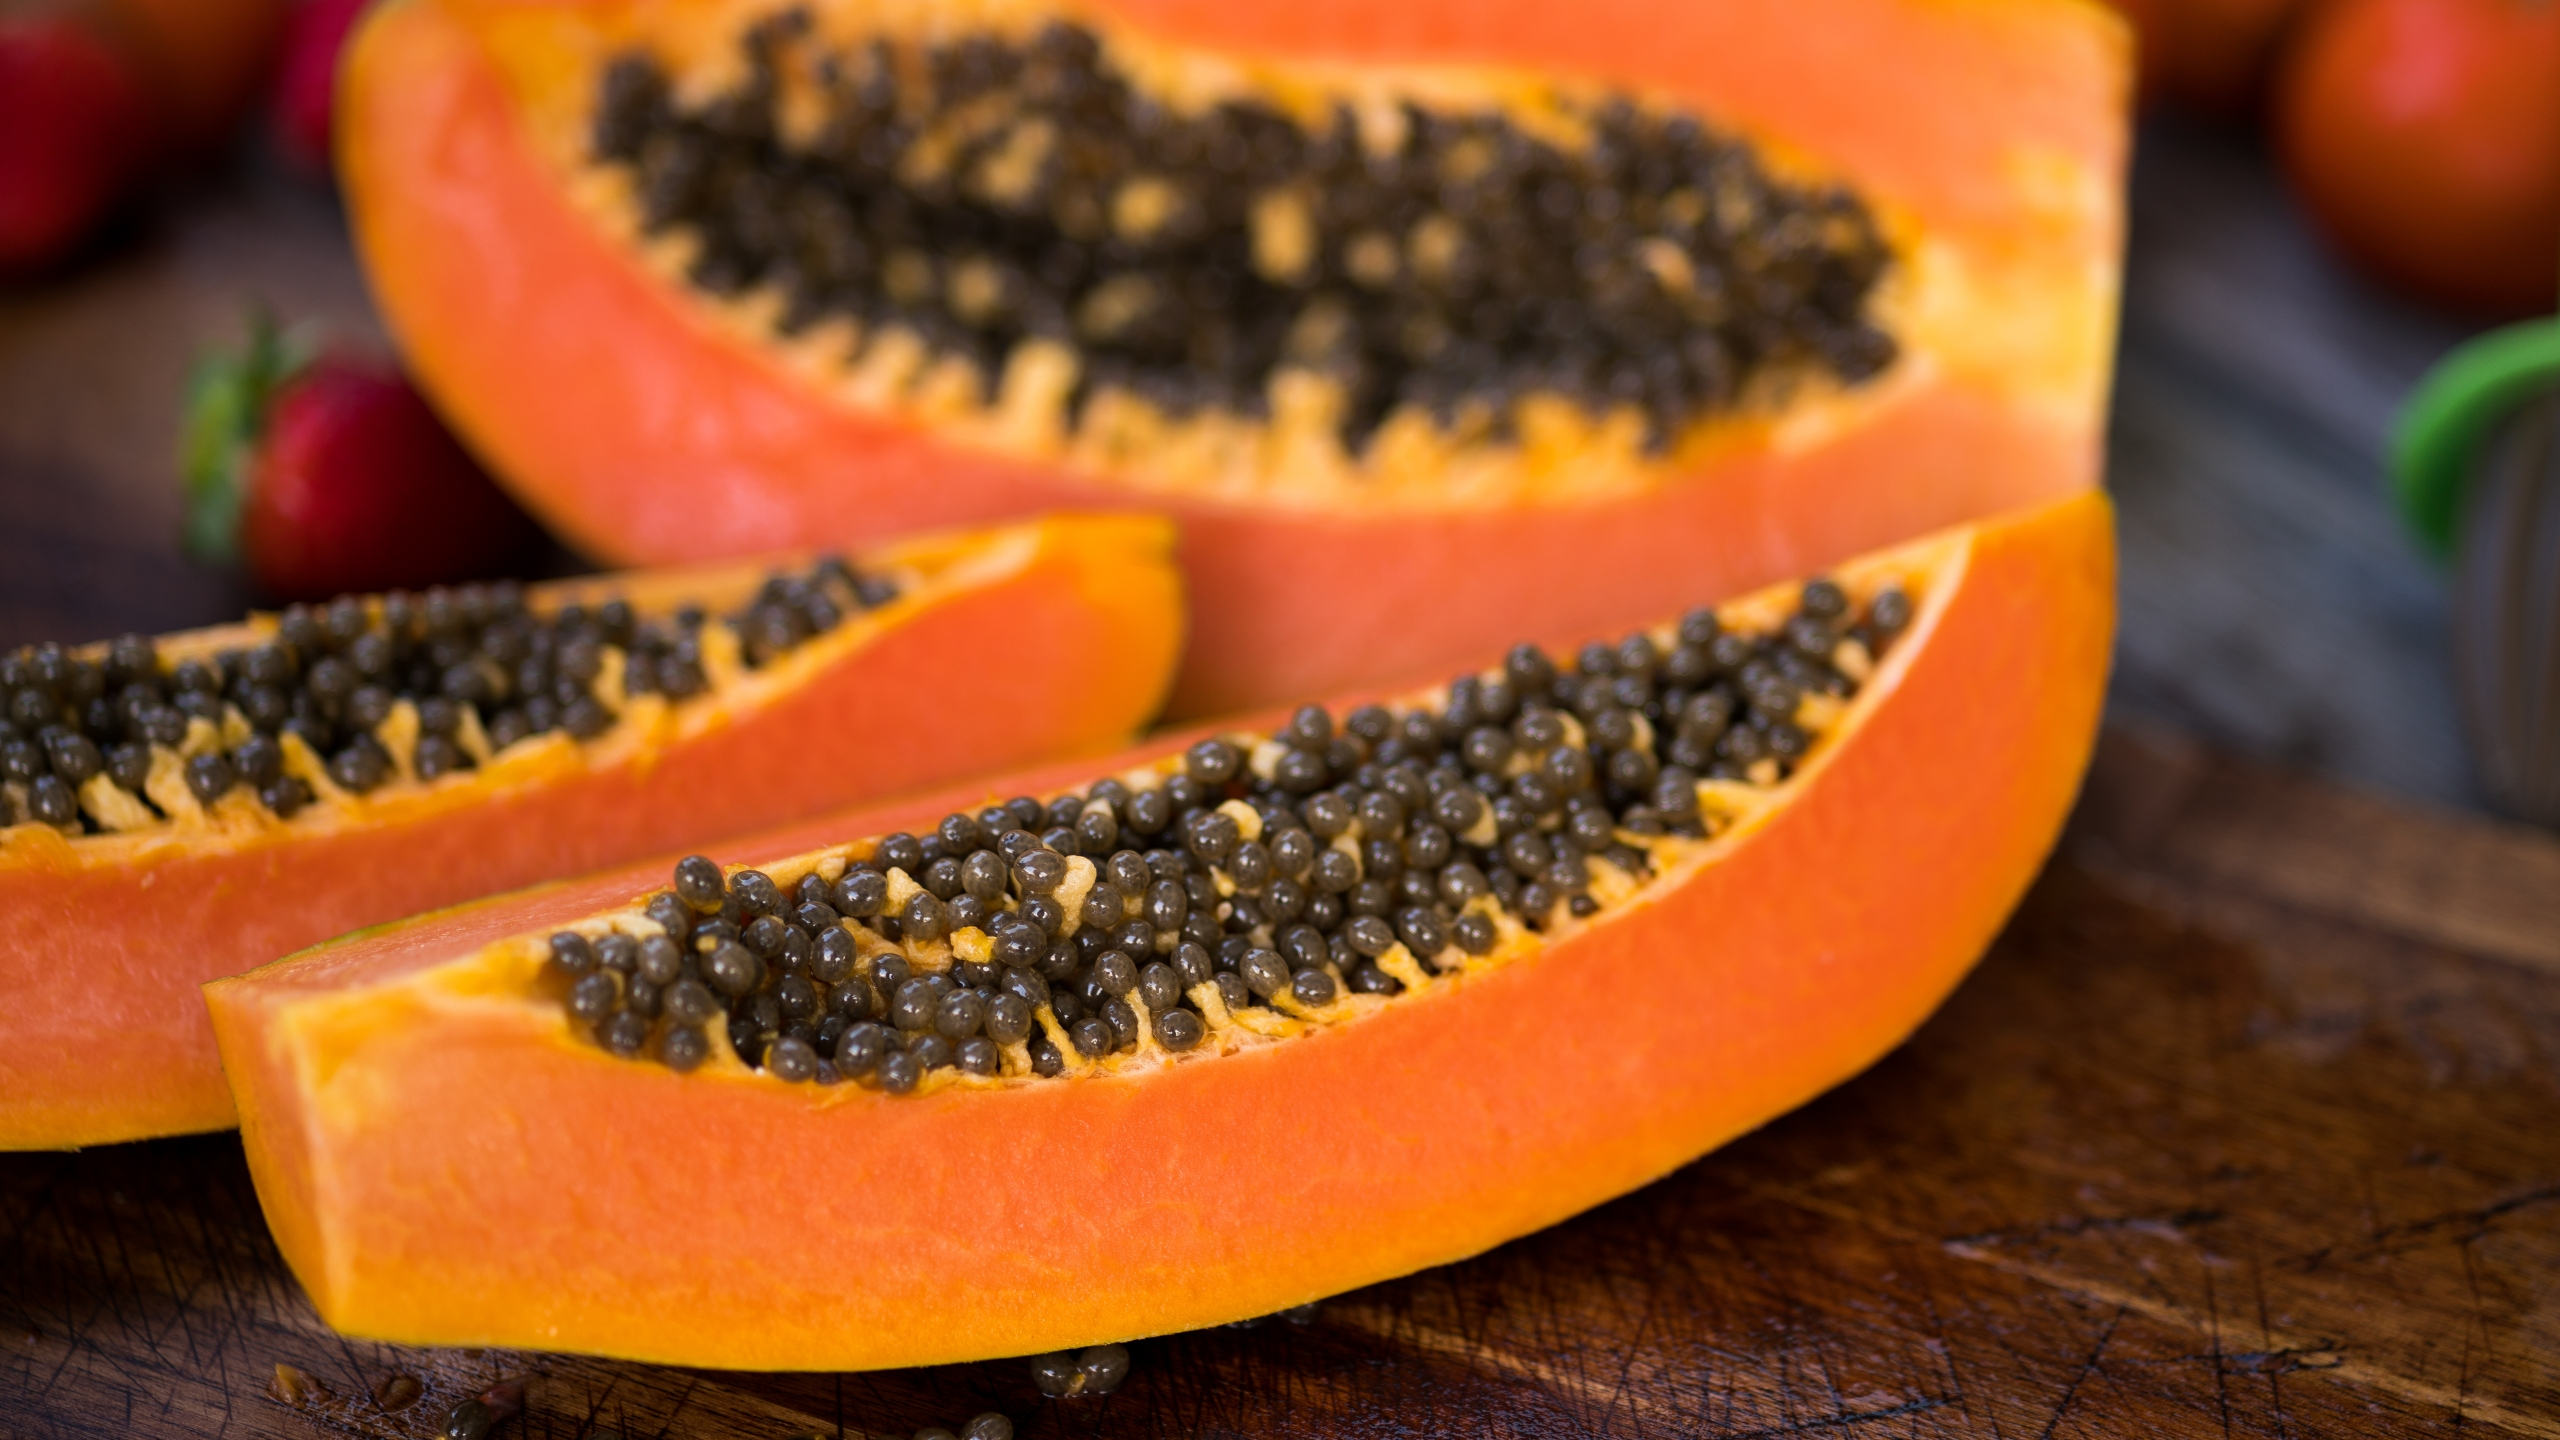 Sliced papayas are seen in this file photo. (Credit: Getty Images)